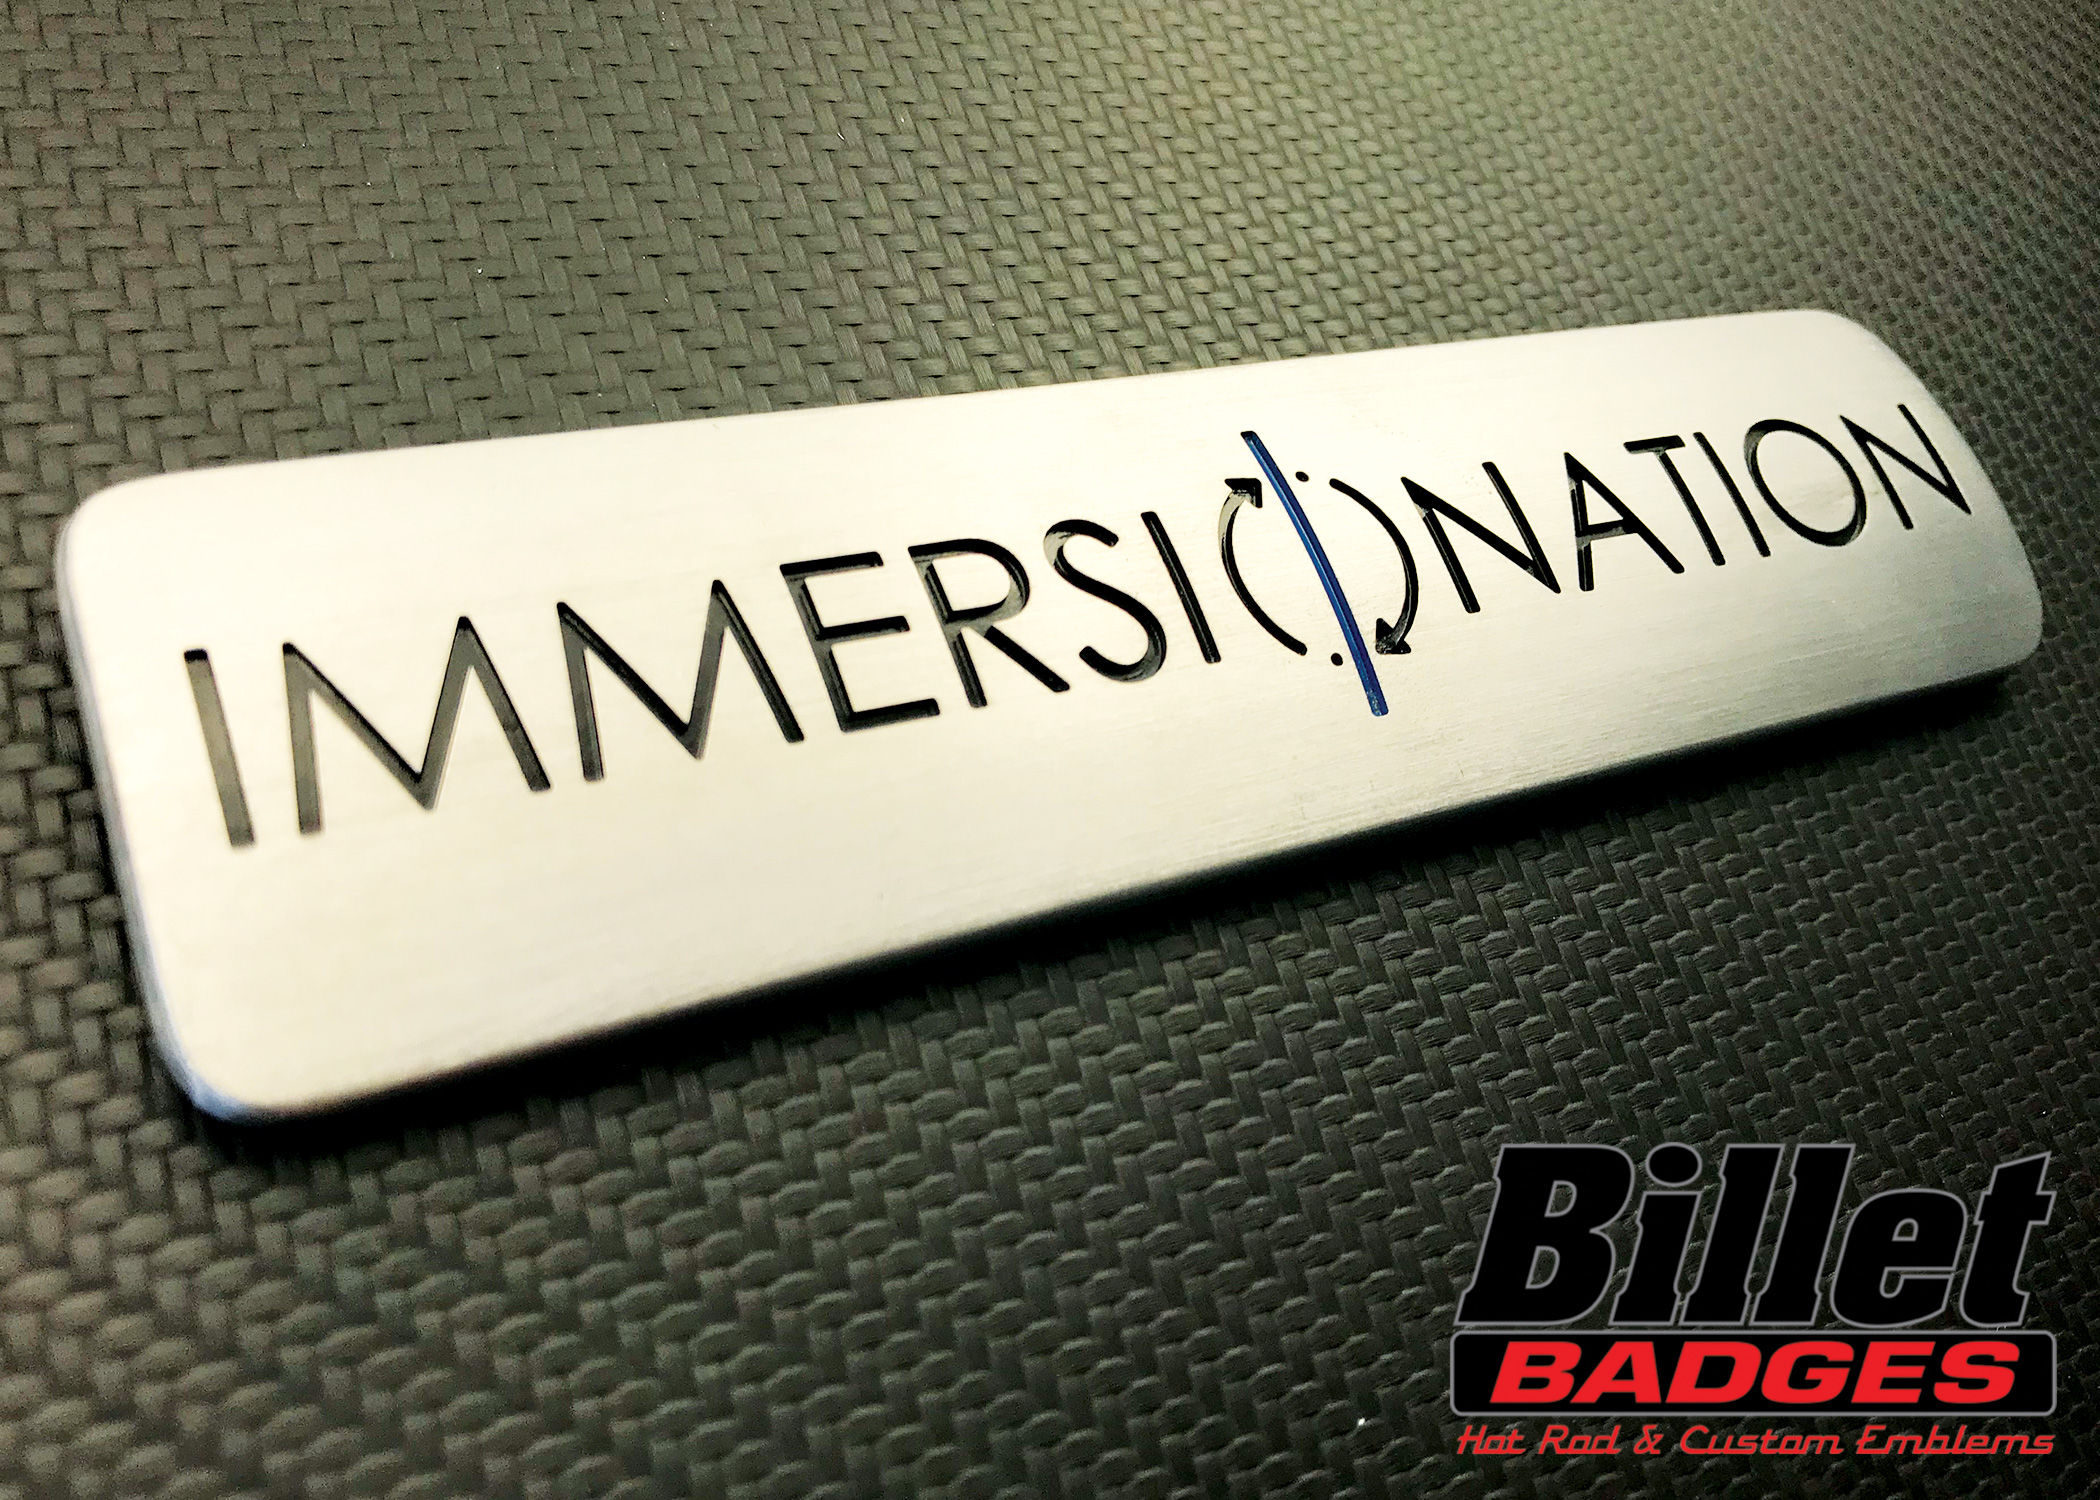 Immersionation